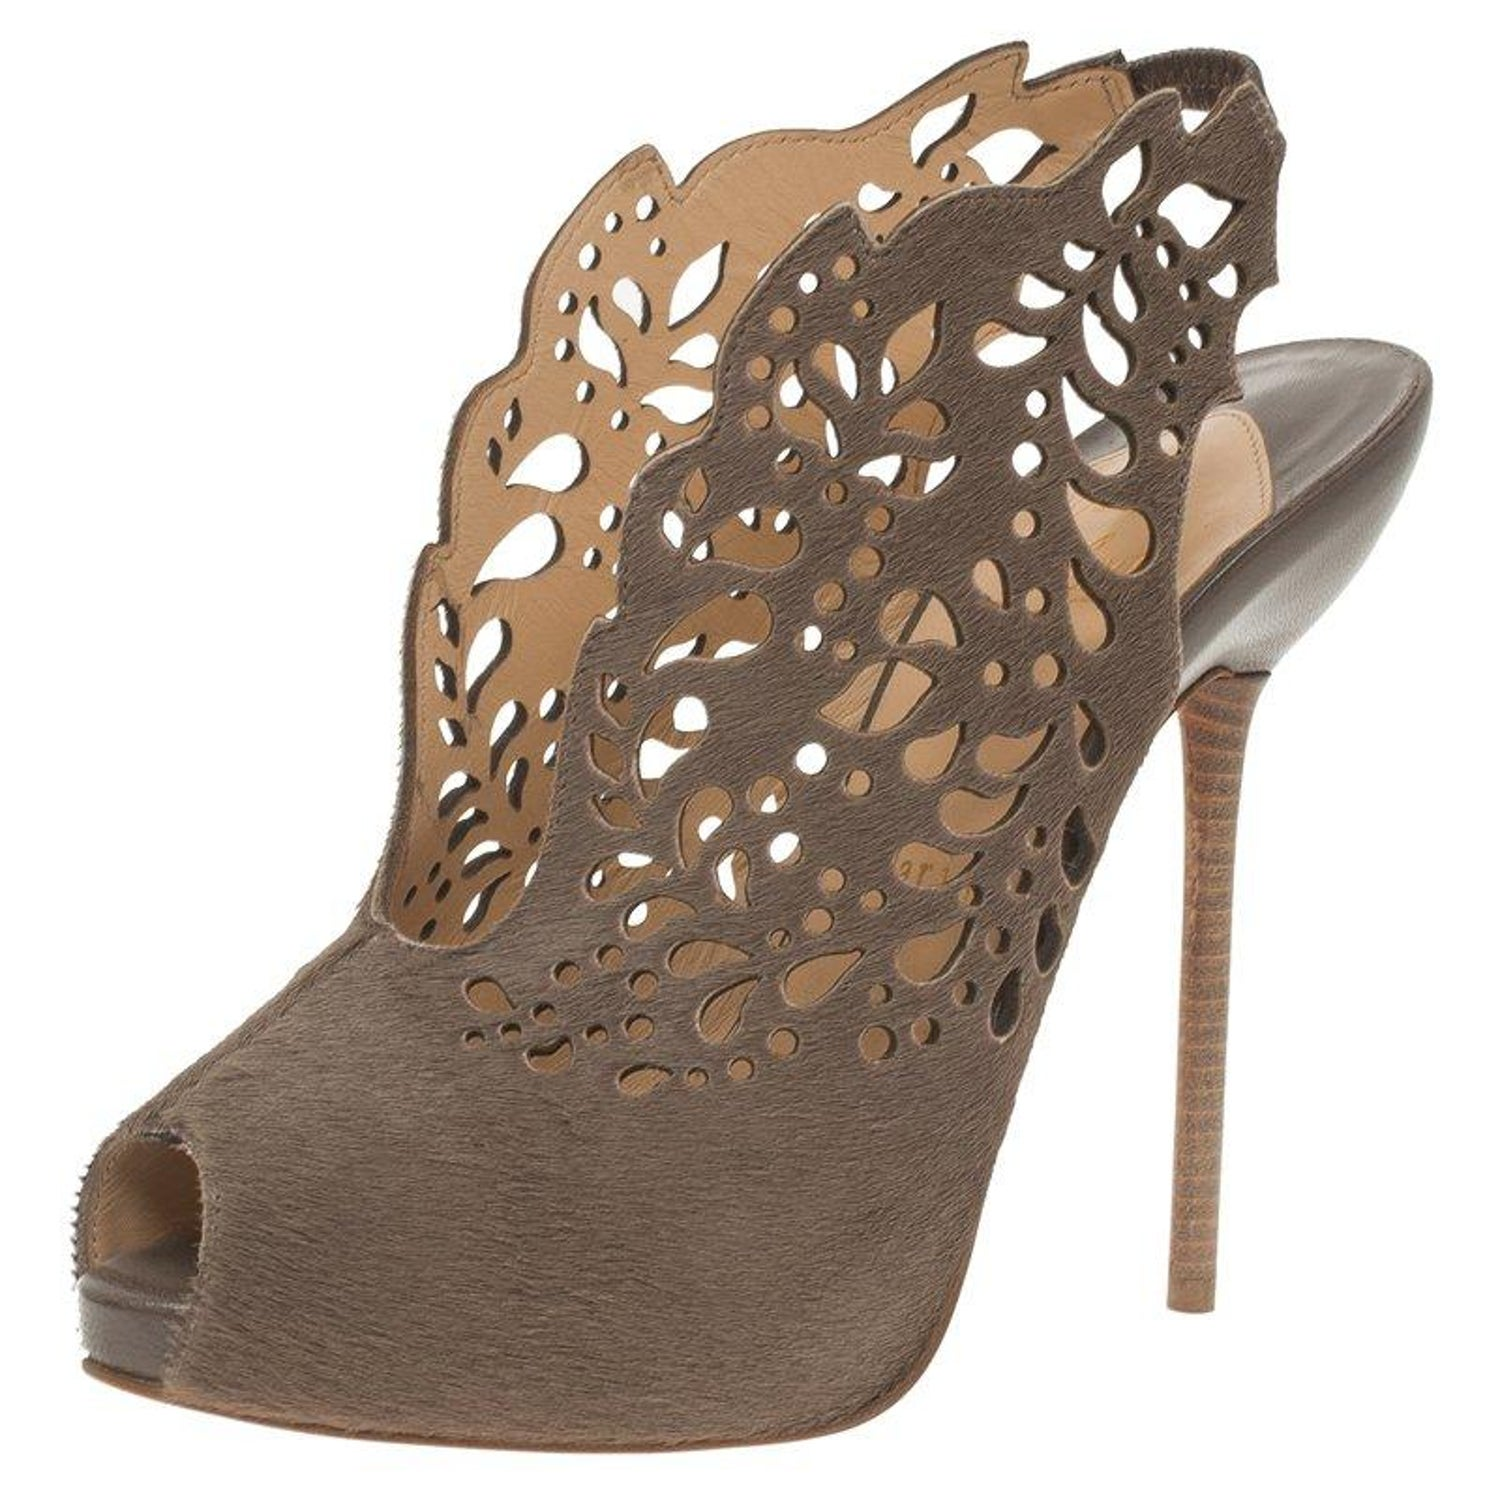 72bf14a8b143 Christian Louboutin Brown Calf Hair-On Markesling Slingback Sandals Size  37.5 For Sale at 1stdibs